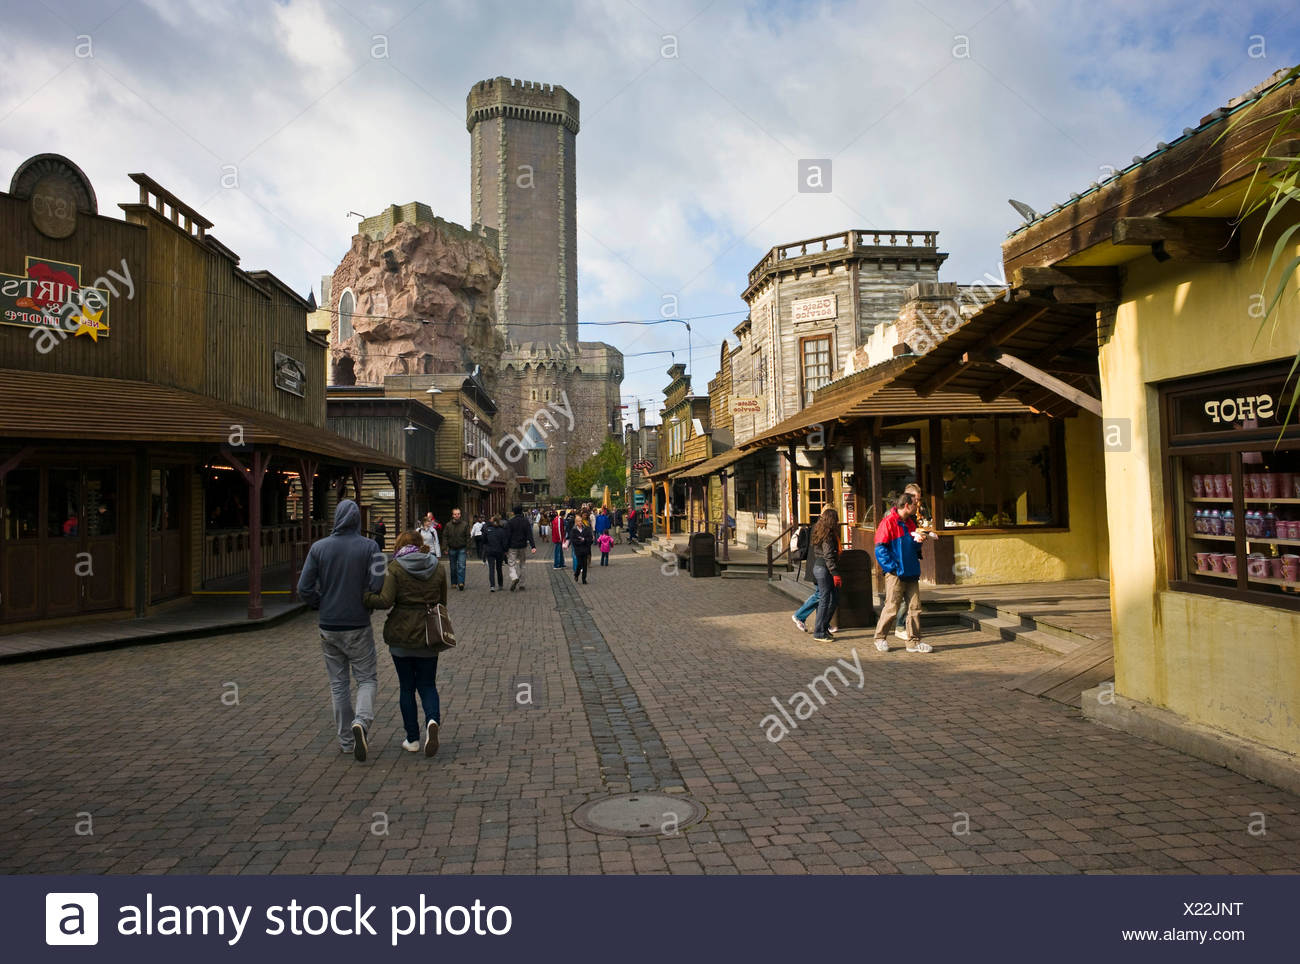 Phantasialand, amusement park, attraction MYSTERY CASTLE, Bruehl, Nordrhein-Westfalen, Germany, Europe Stock Photo